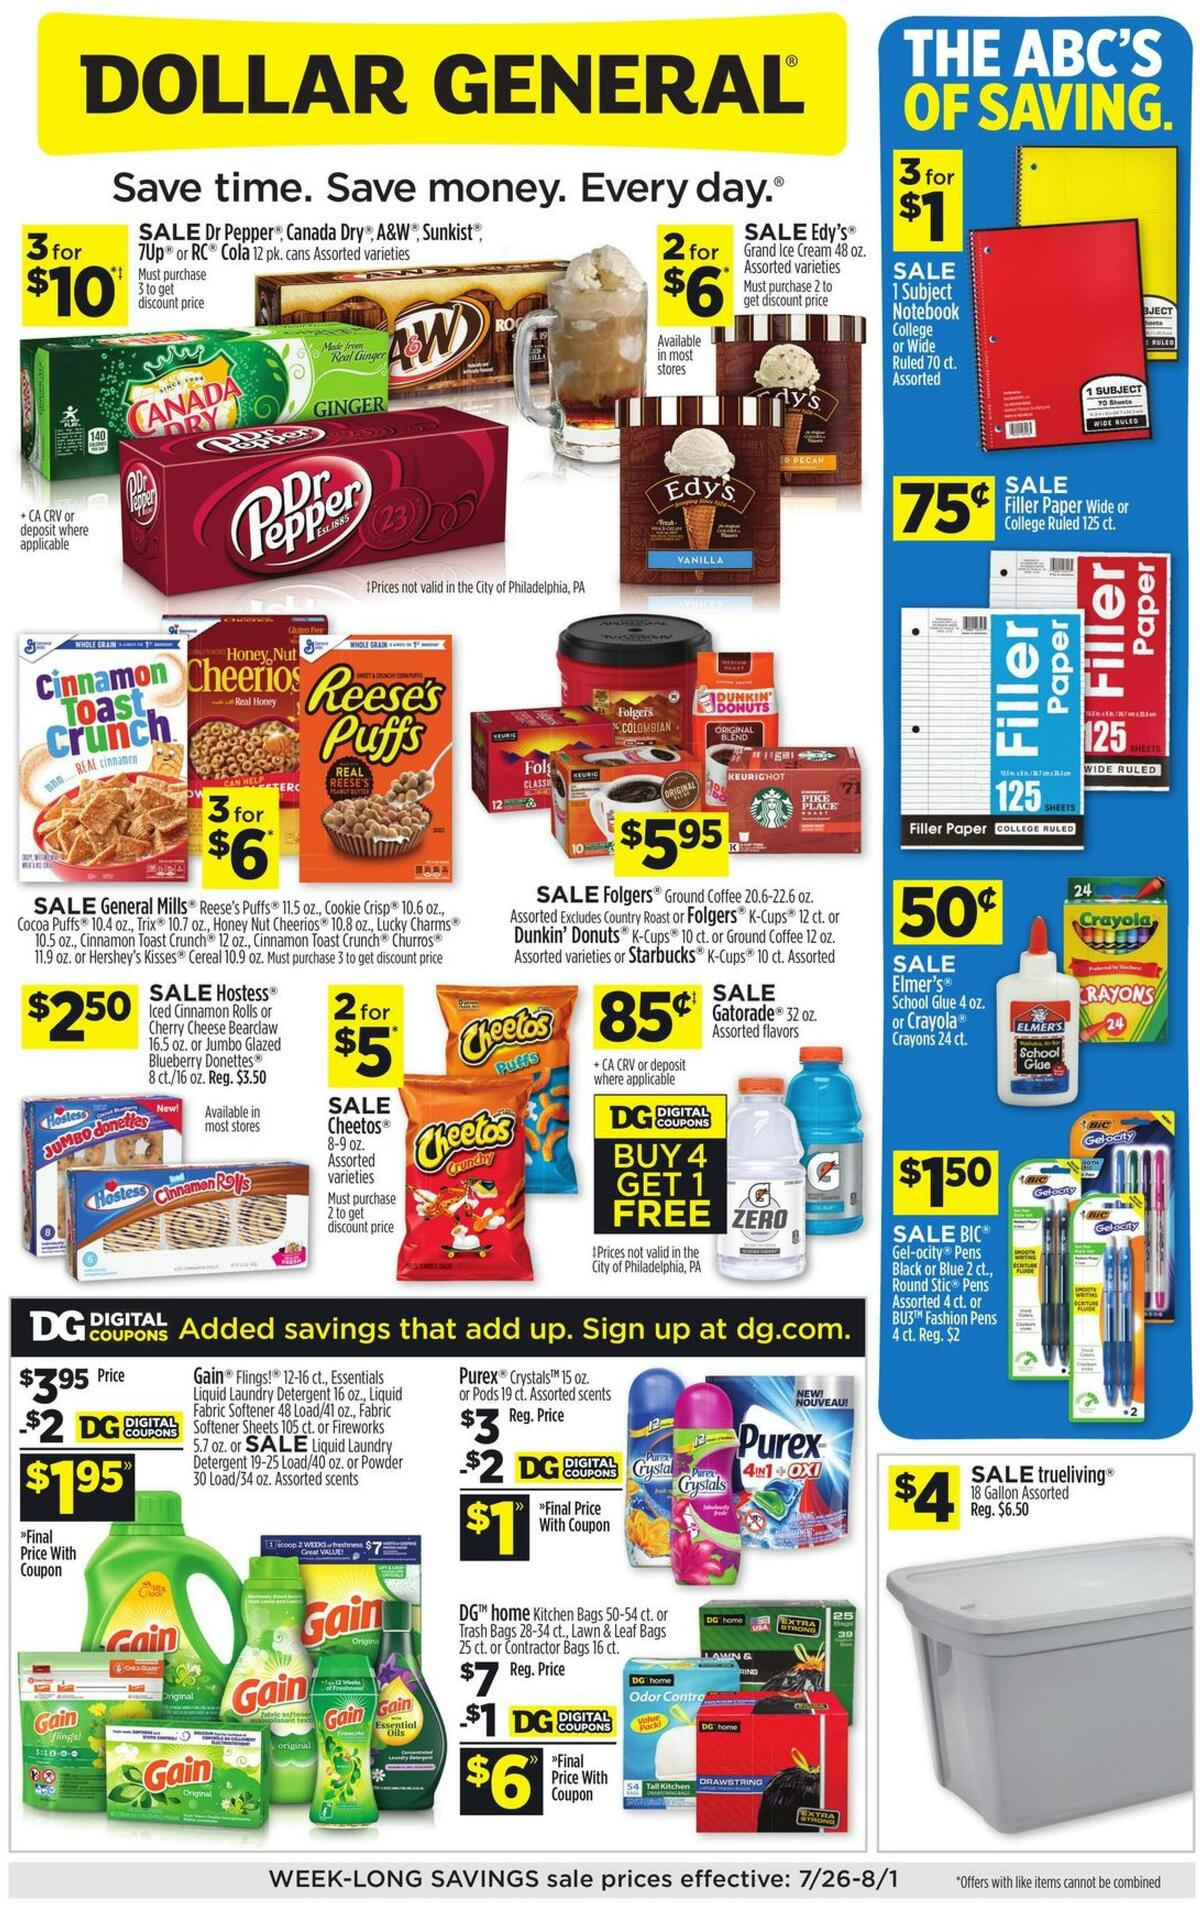 Dollar General Weekly Ad from July 26